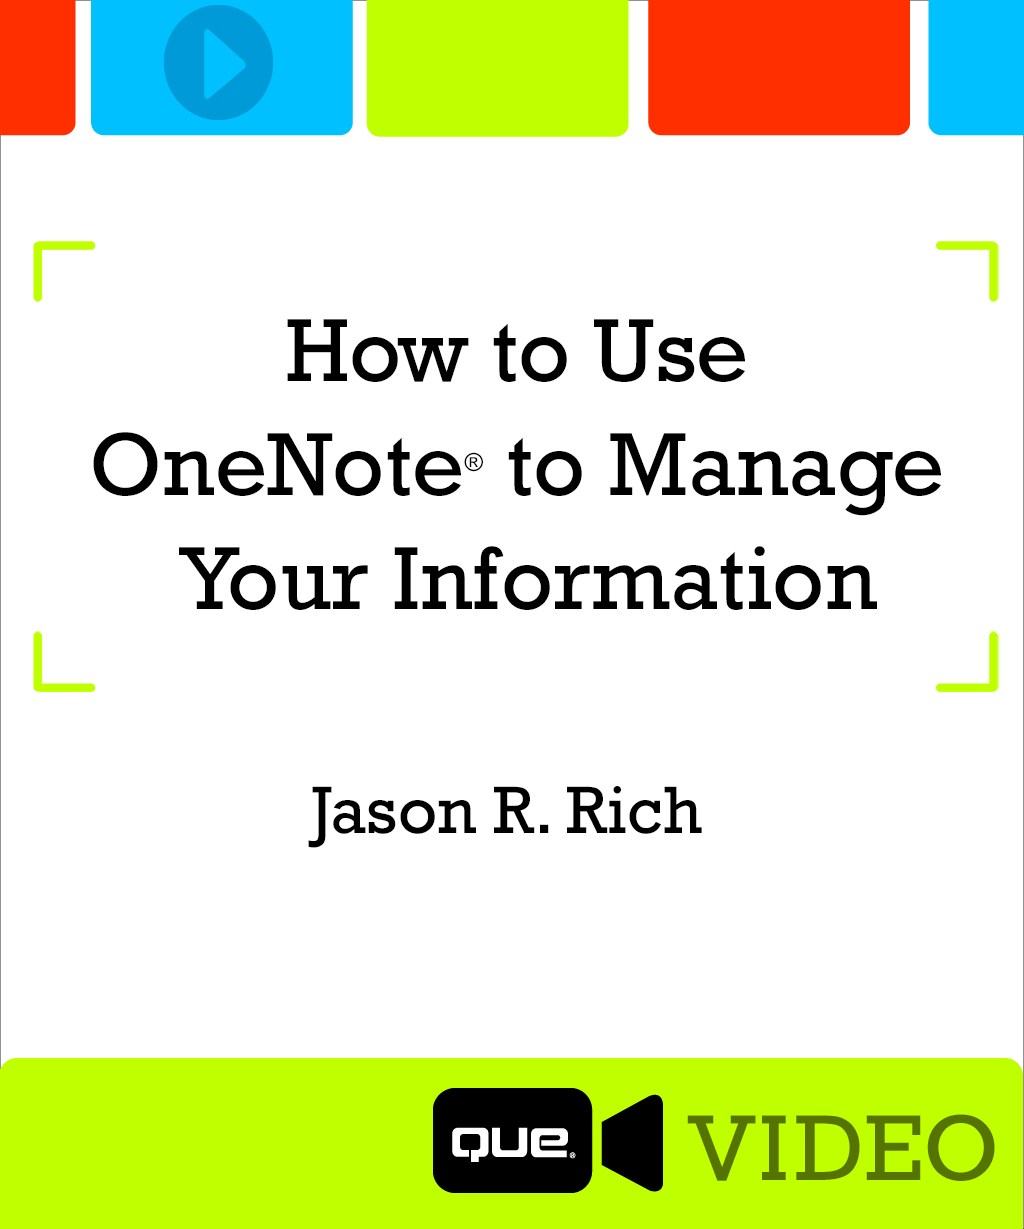 Part 1: Getting Started Using Microsoft OneNote